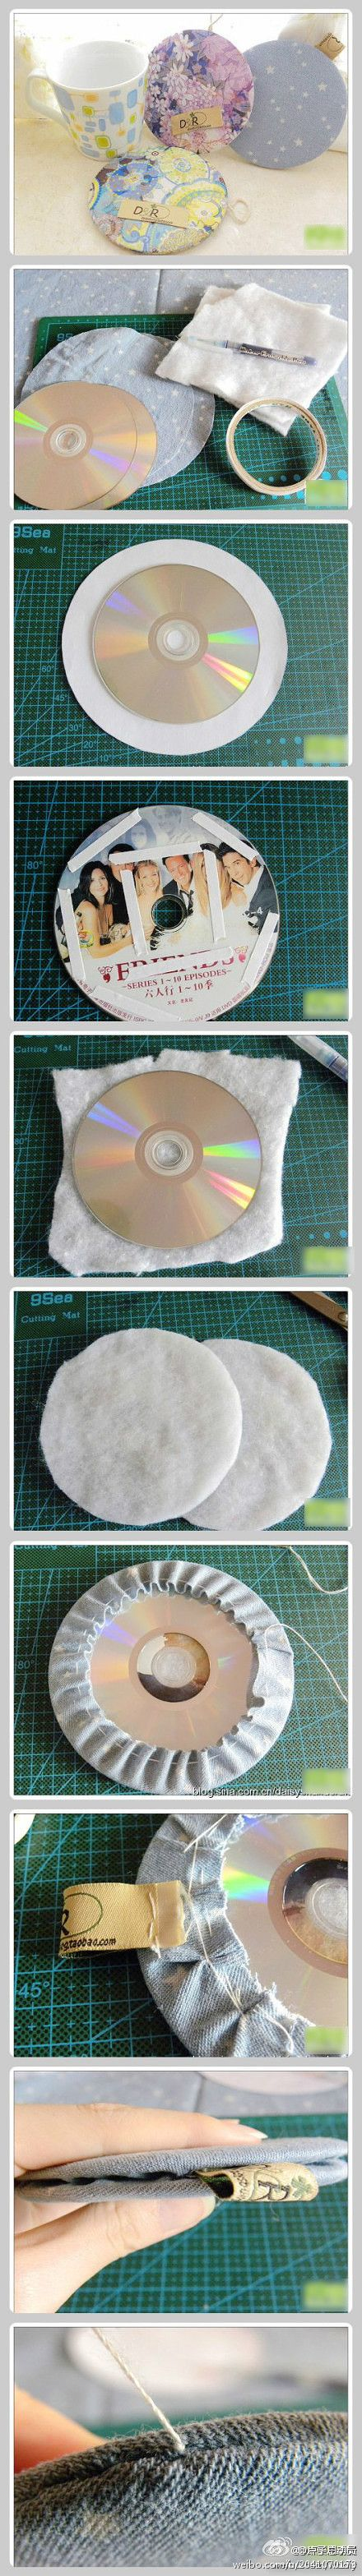 Recycle old CDs into coasters.  How about using these in counted cross stitch finishing?